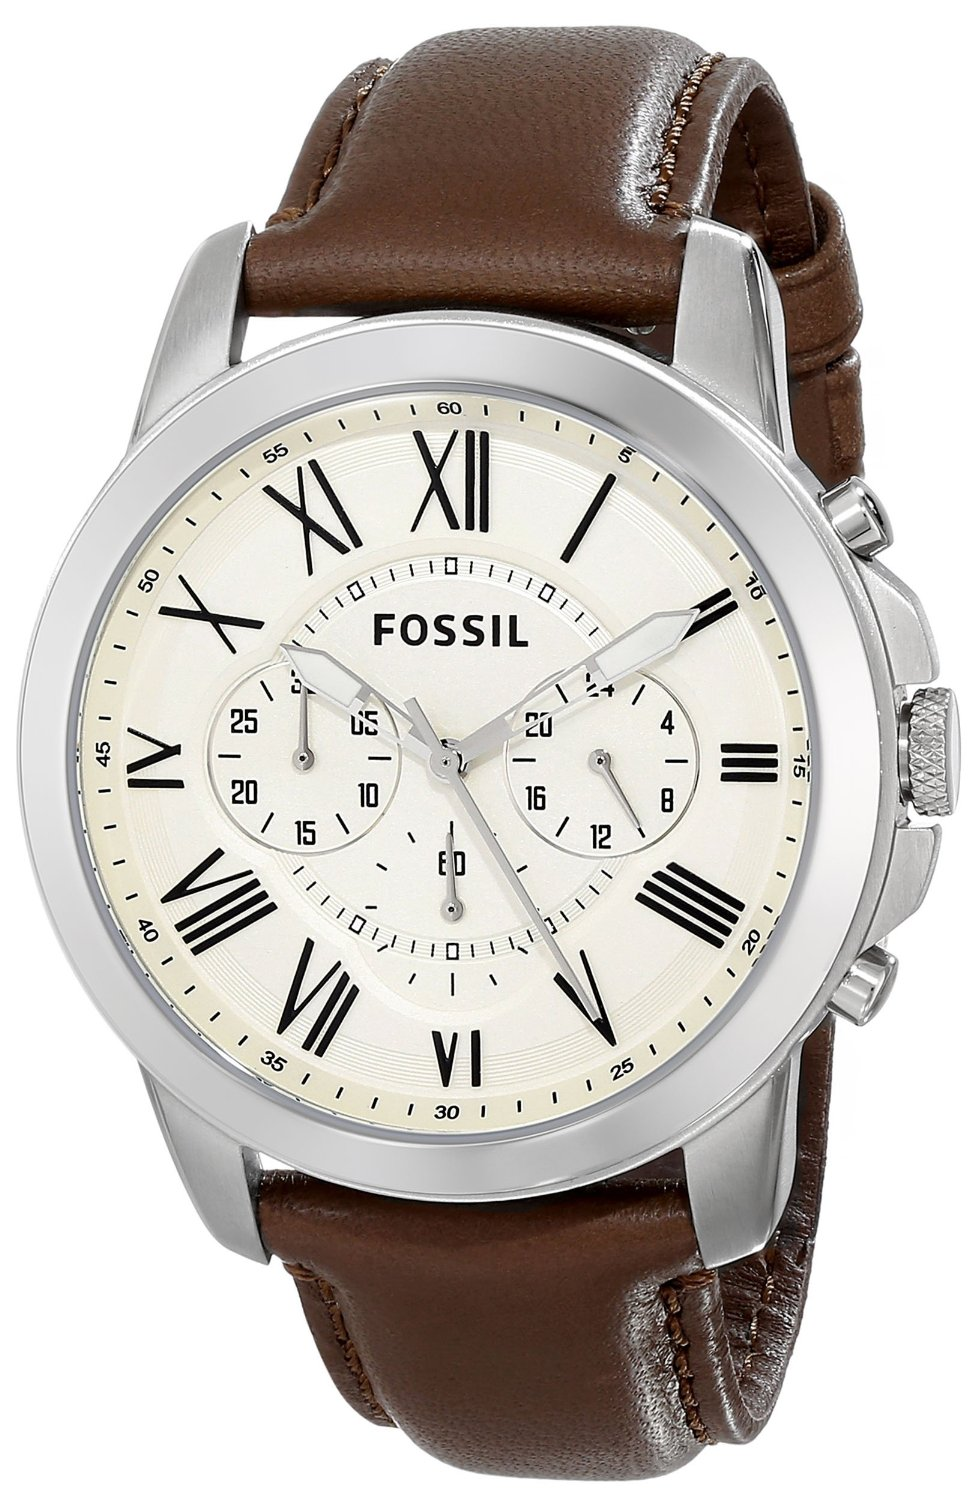 Fossil FS4735 Grant Brown Leather Watch (1)